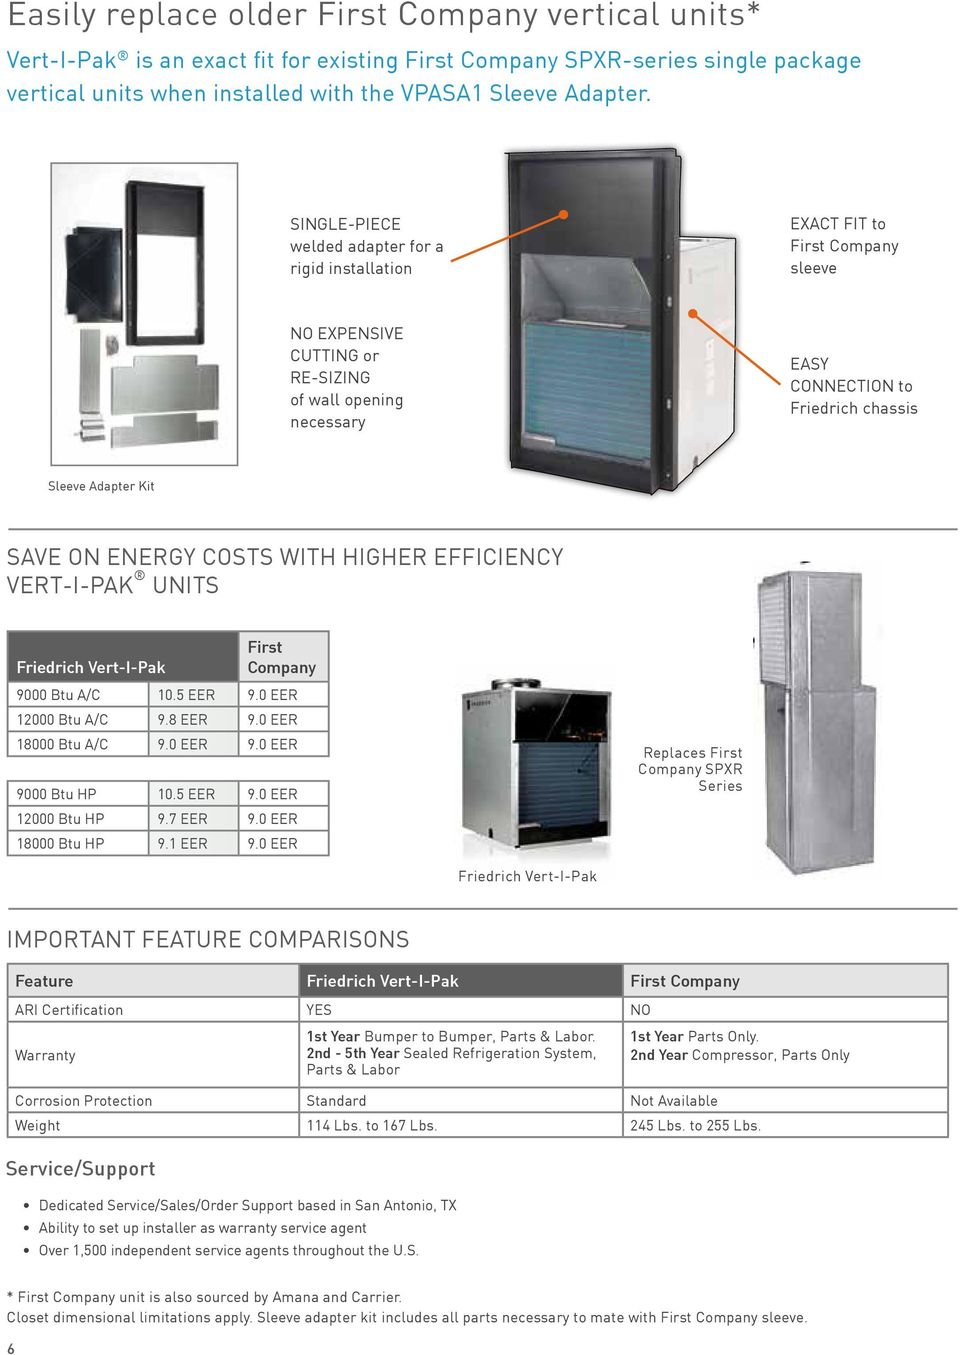 Kit SAVE ON ENERGY COSTS WITH HIGHER EFFICIENCY VERT-I-PAK UNITS Friedrich Vert-I-Pak First Company 9000 Btu A/C 10.5 EER 9.0 EER 12000 Btu A/C 9.8 EER 9.0 EER 18000 Btu A/C 9.0 EER 9.